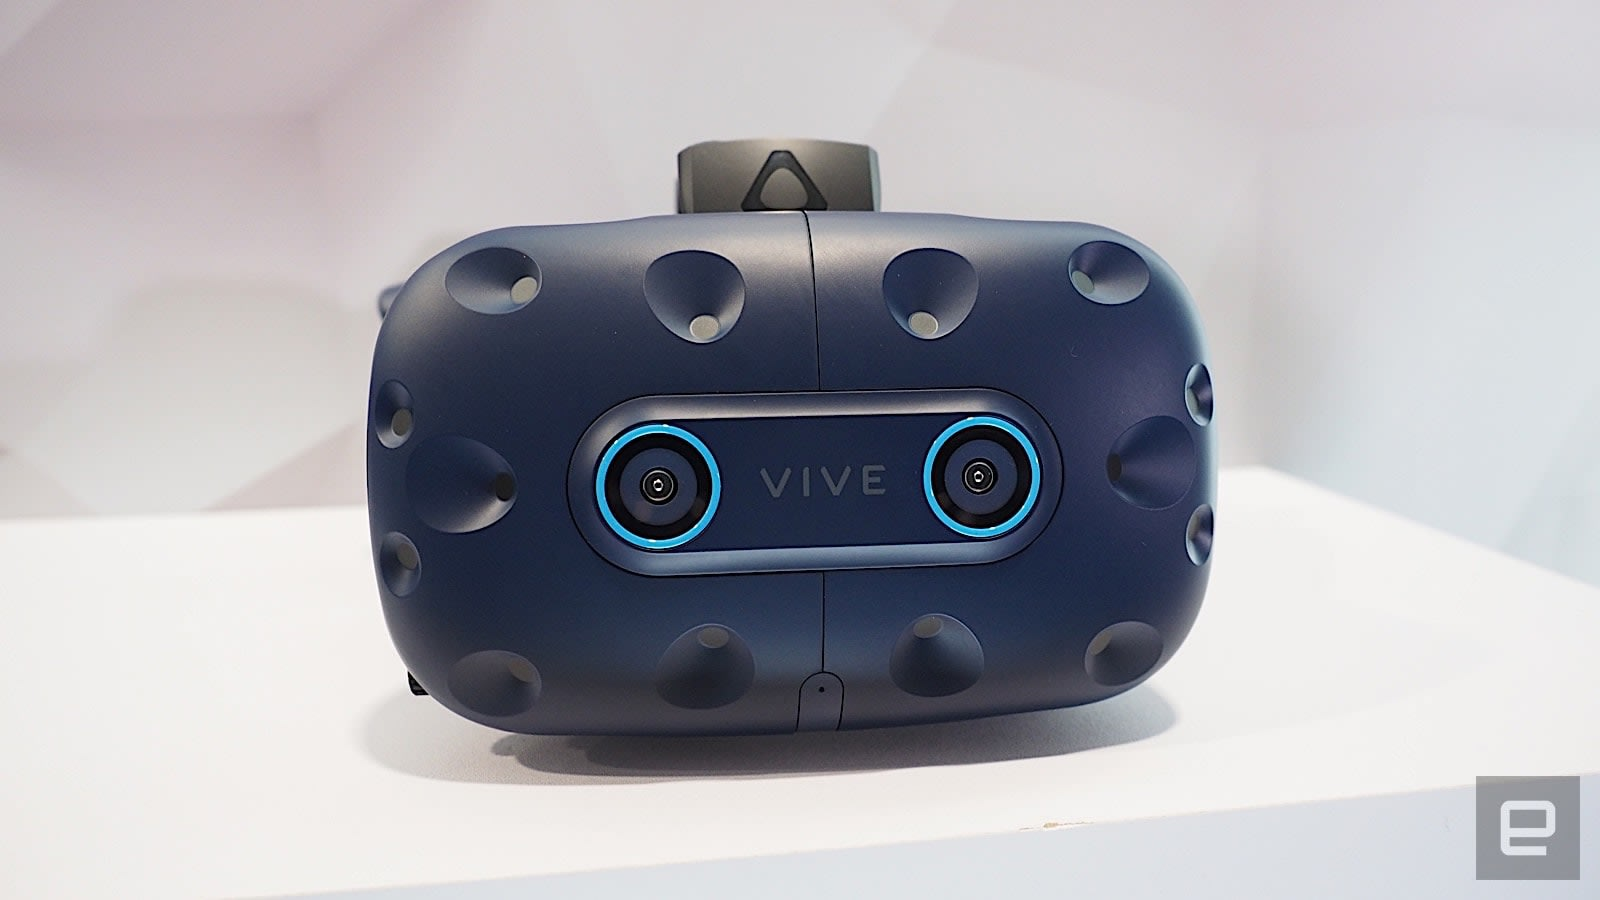 The Vive Pro Eye adds eyeball-tracking to HTC's VR headset line